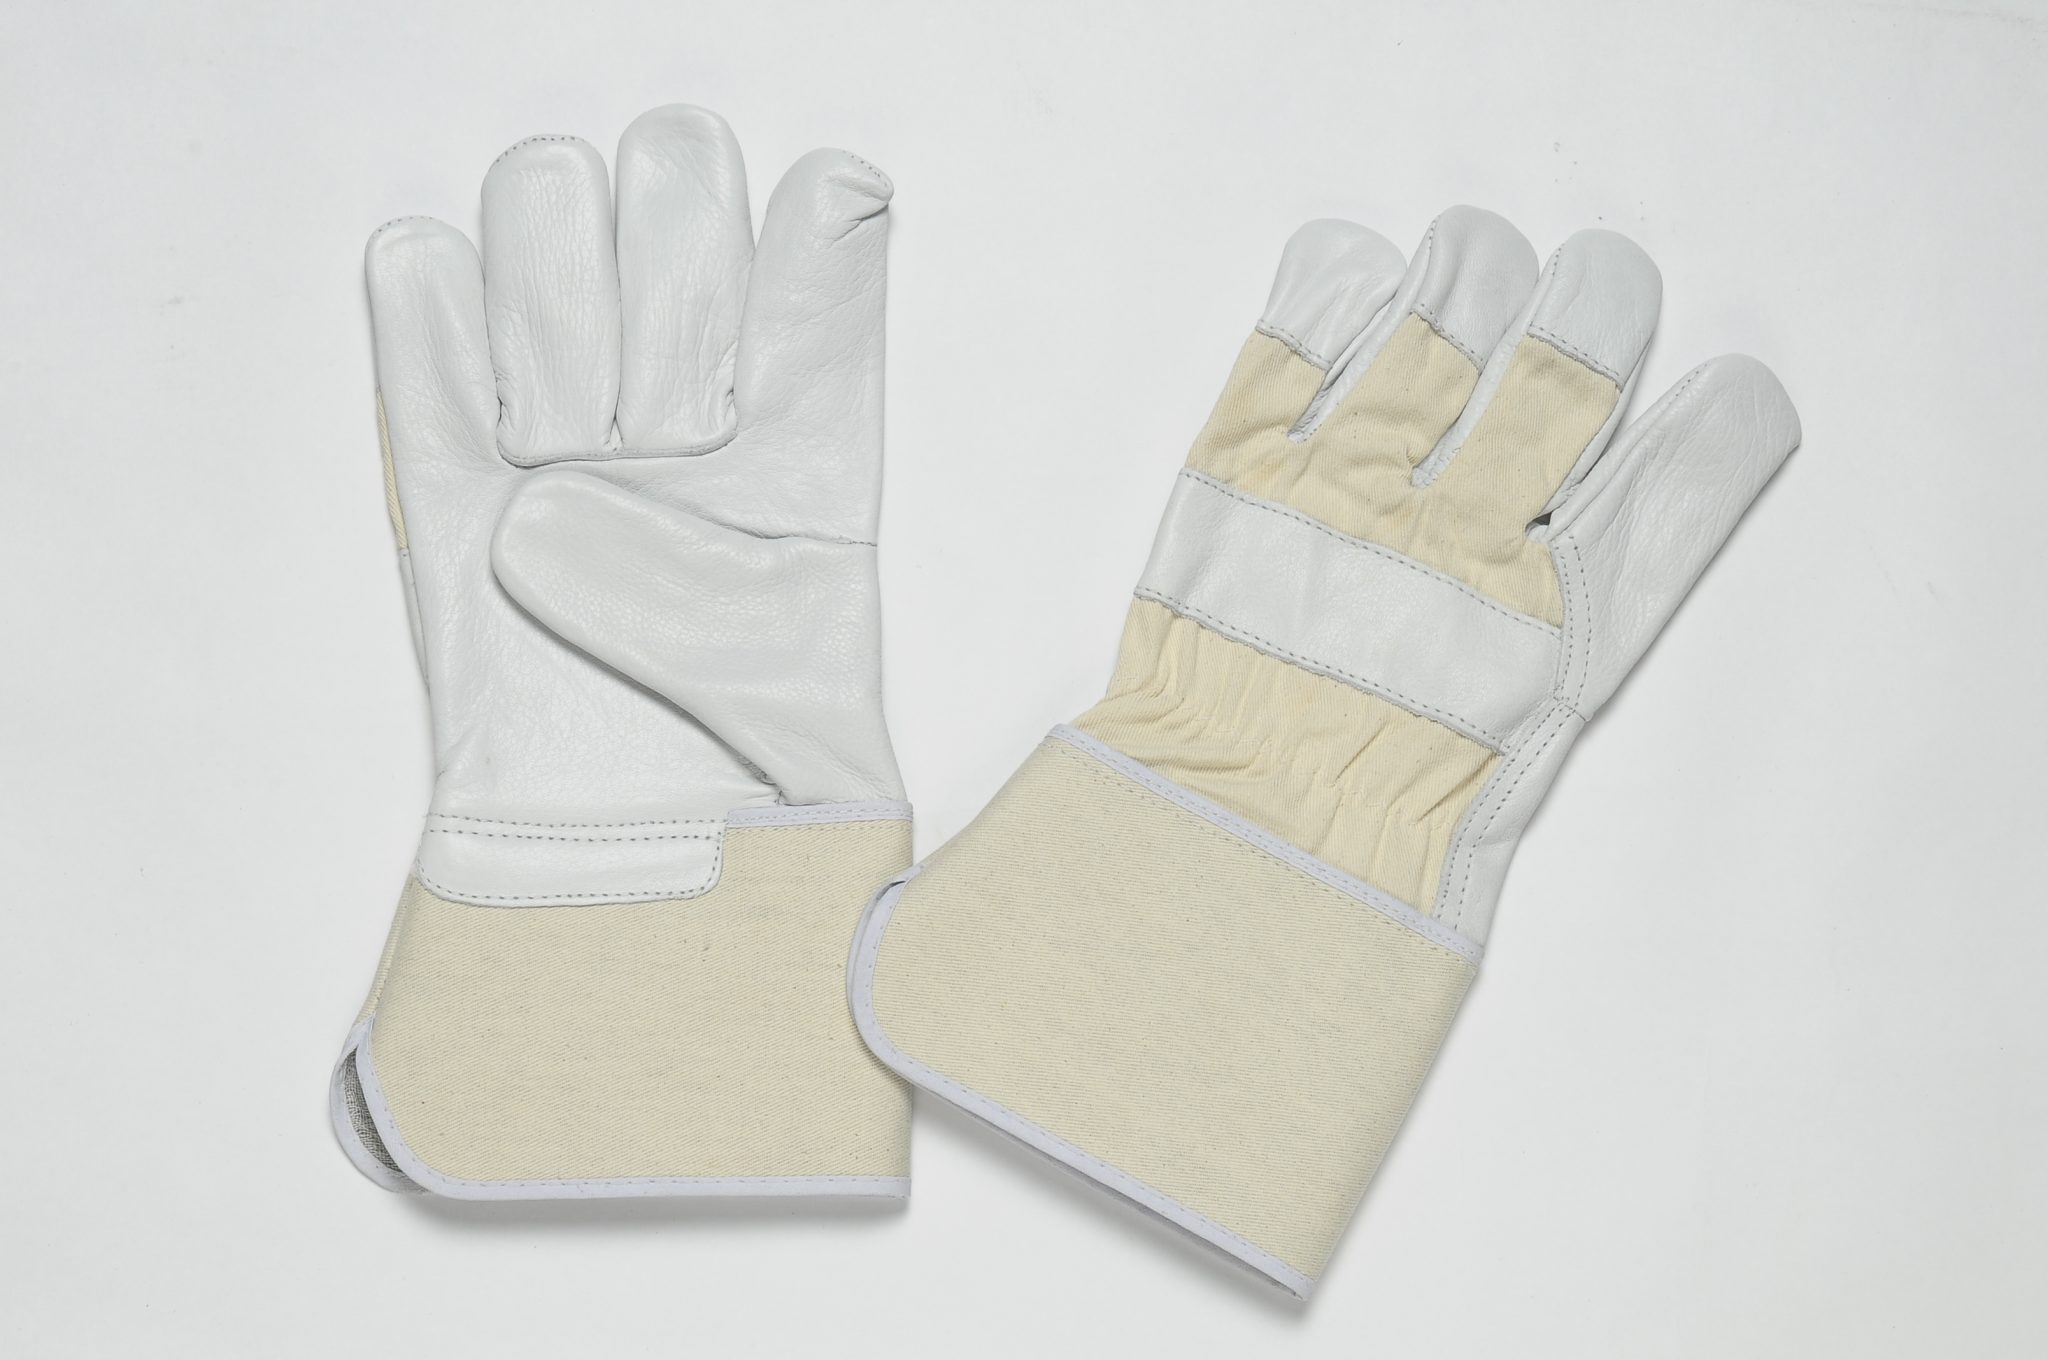 NATURAL GRAIN GLOVES, FLANNEL LINER IN THE PALM, CUFF OF SPLIT, REINFORCEMENT IN PALM & FOREFINGER.